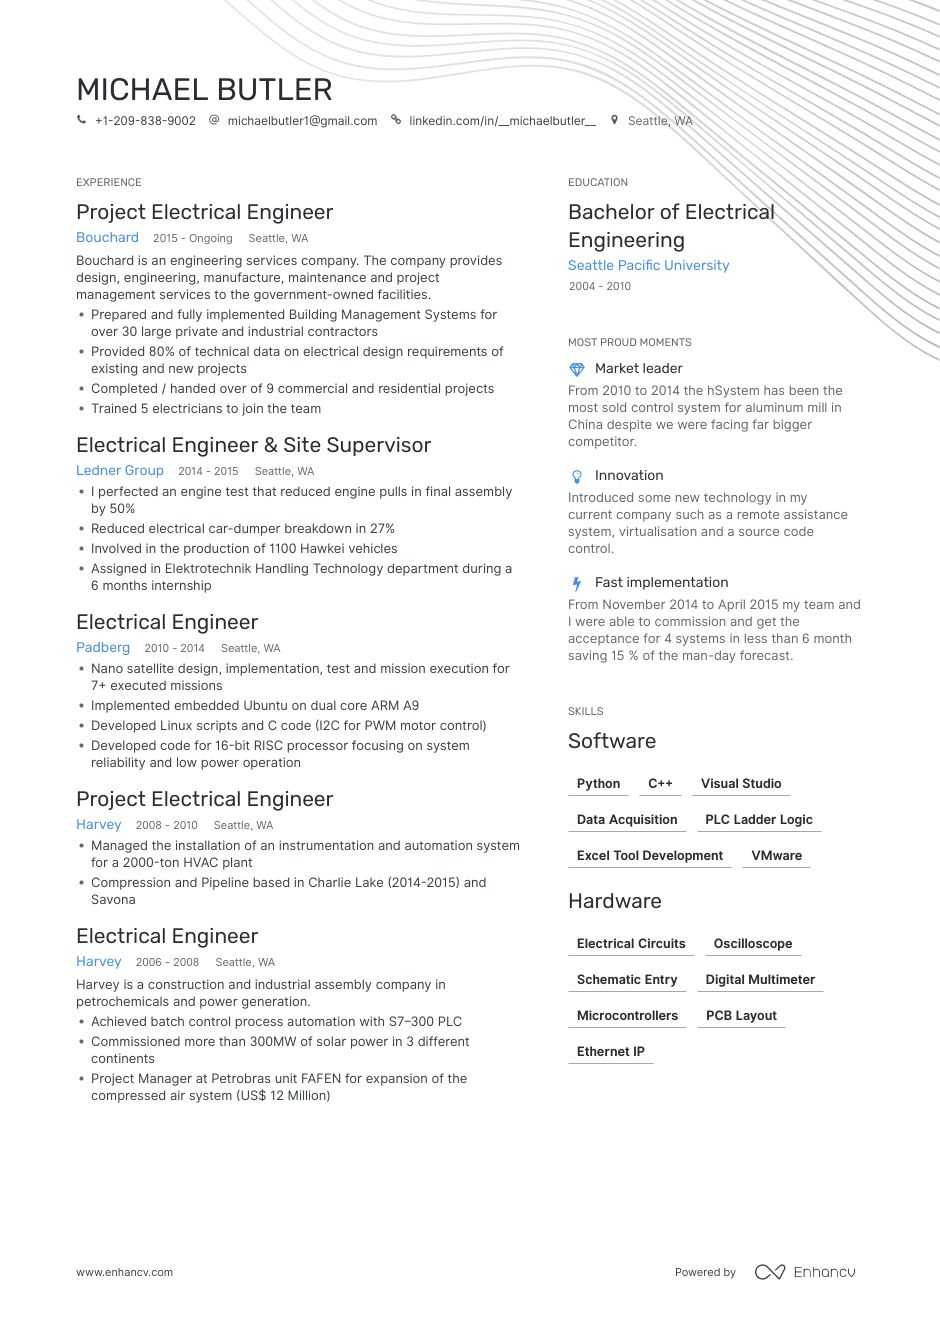 electrical engineer resume examples pro tips featured enhancv objective engineering Resume Engineer Resume Objective Examples